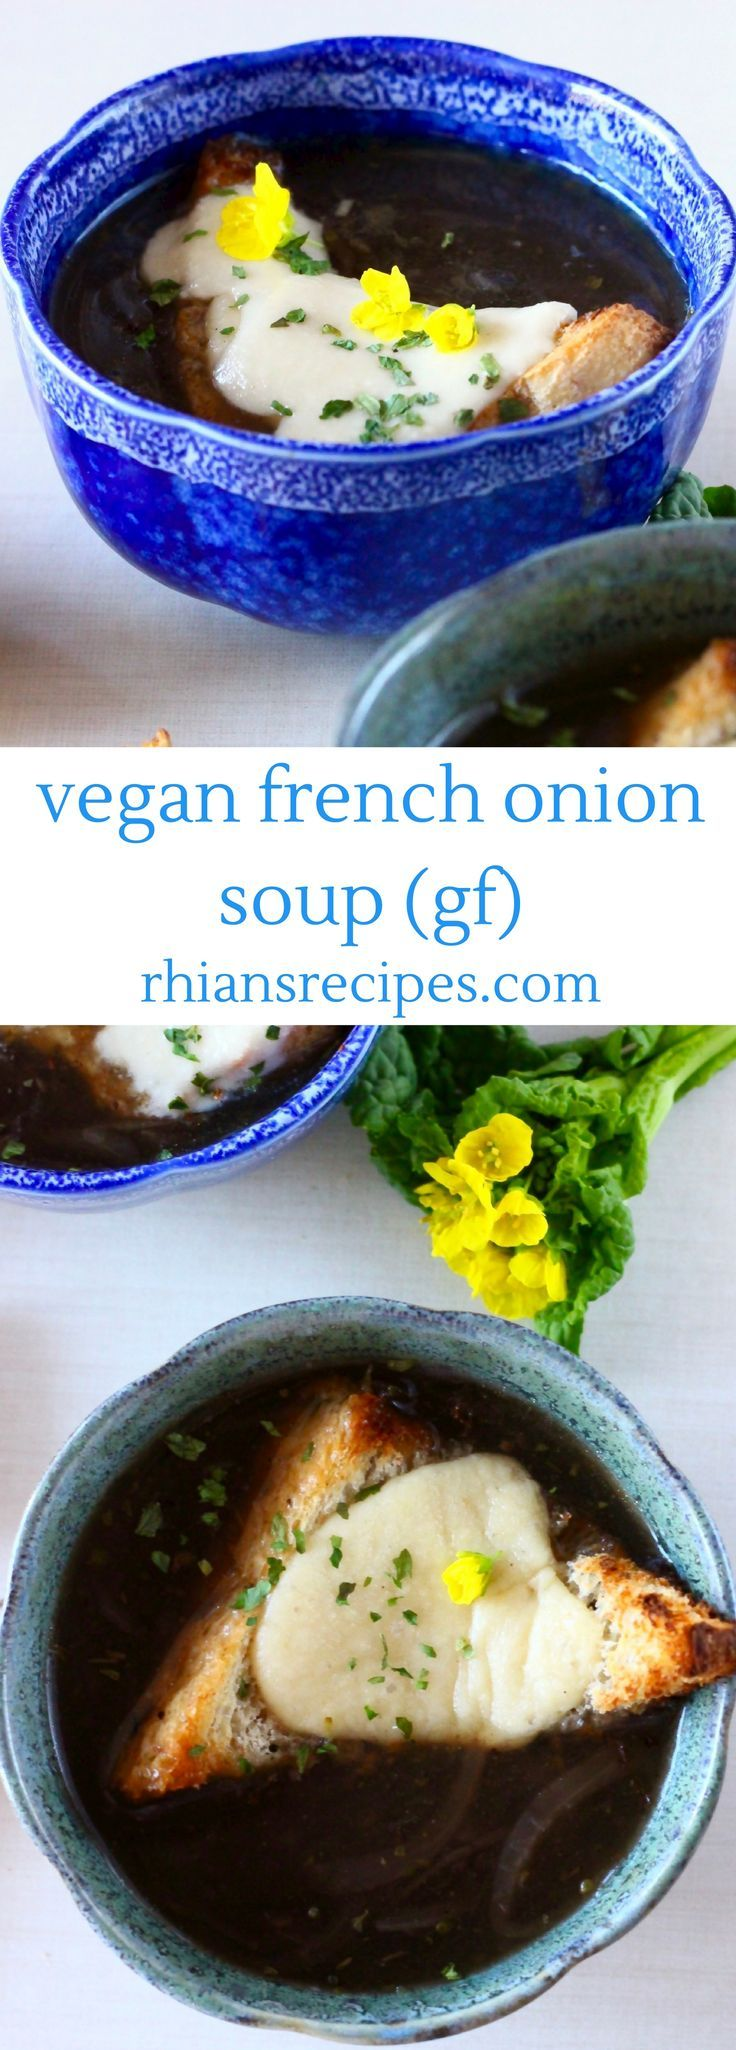 This Vegan French Onion Soup is so easy to make, super flavourful and topped with cheesy toast! Gluten-free.